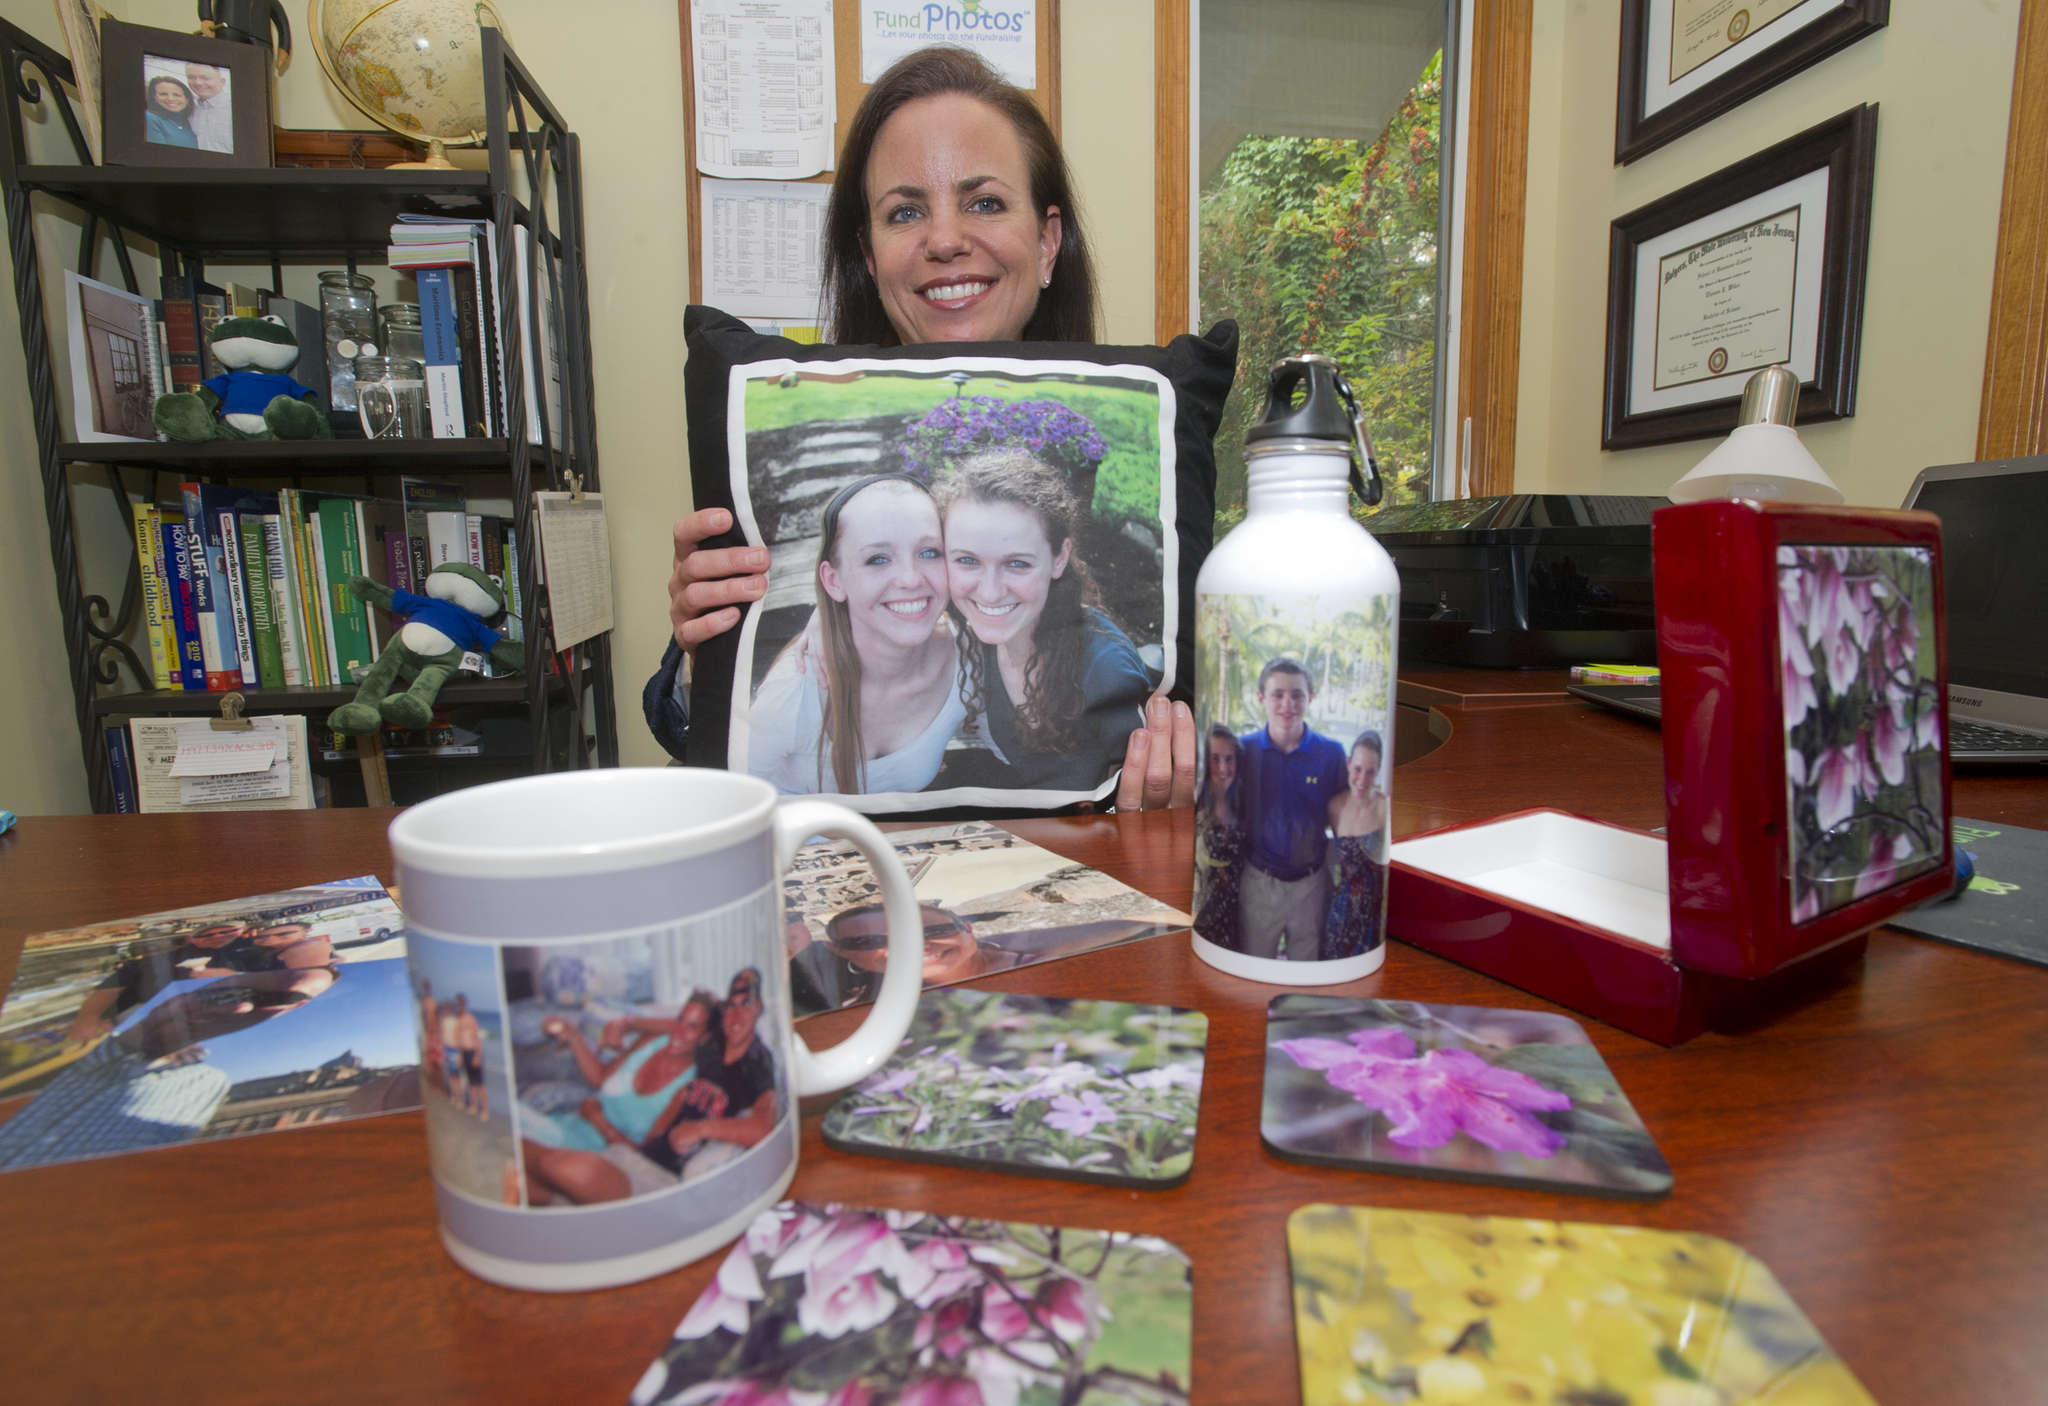 Amy Wiker, owner of the Mount Laurel-based FundPhotos, seen here in her Medford Lakes home, shows off some of their product including photo prints and photos printed on mugs, coasters, water bottles, and pillows.  (Avi Steinhardt/ For the Philadelphia Inquirer)